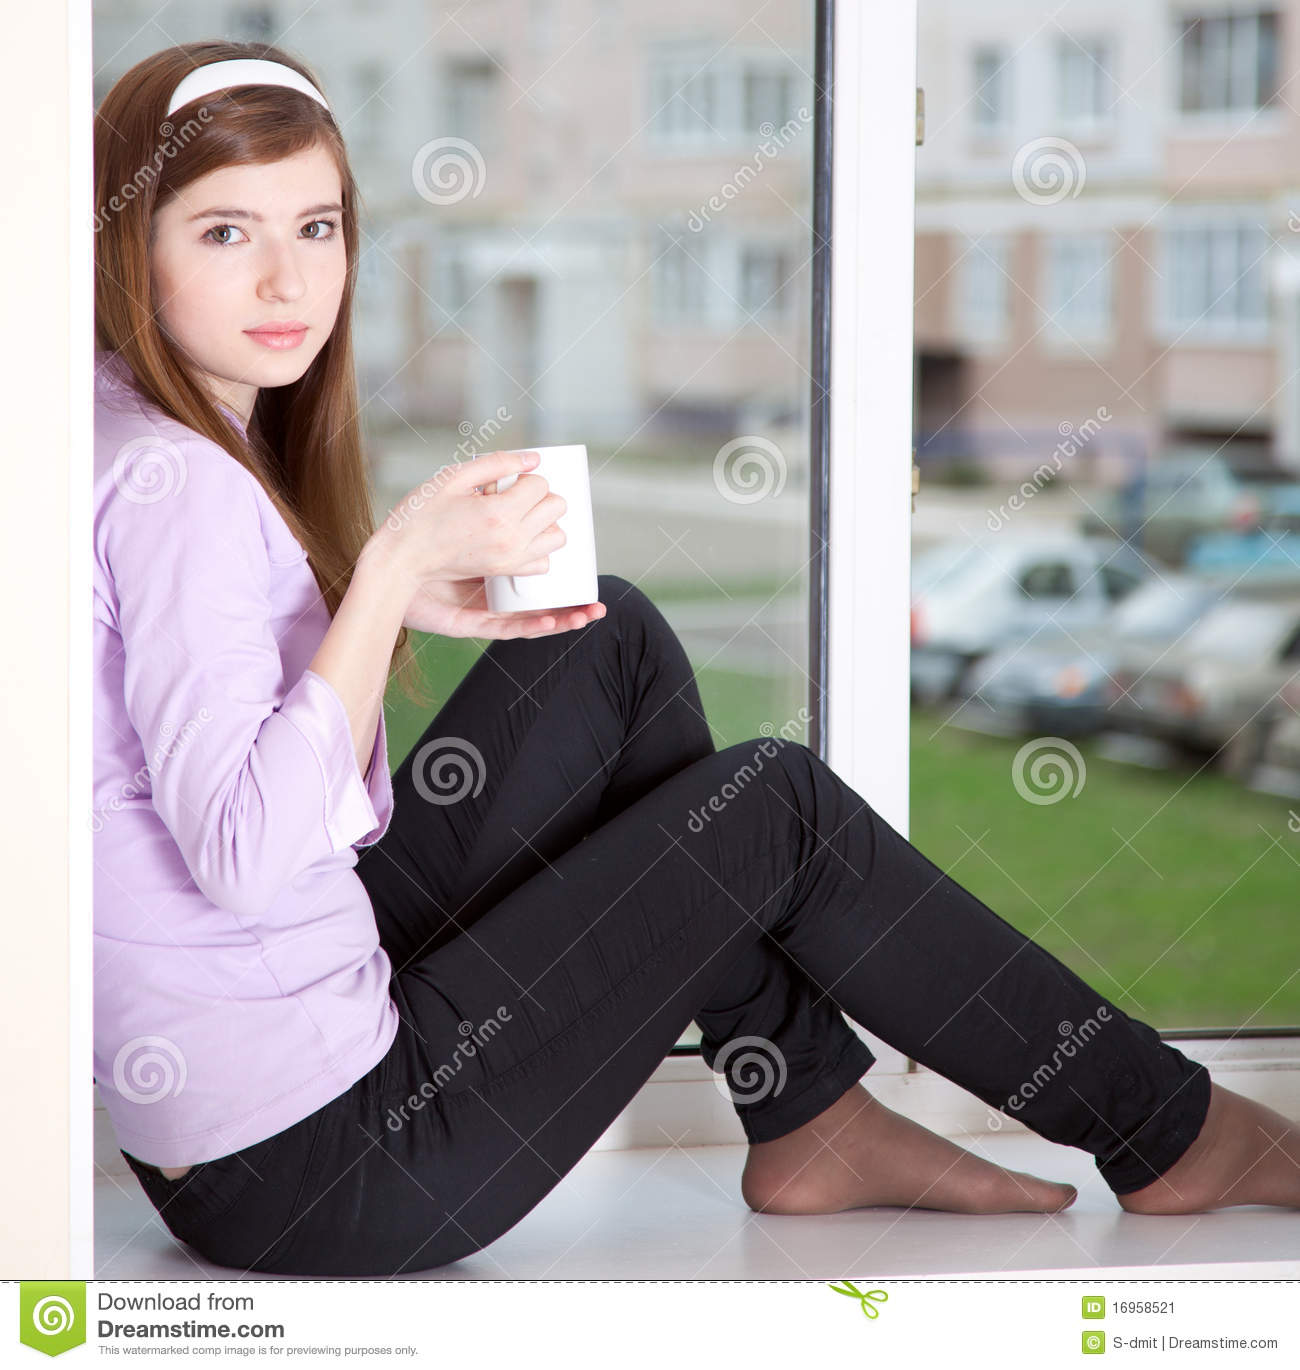 16 Attractive Window Seat Designs For Pleasant Relaxation: A Girl Is Sitting On The Window-sill Stock Image